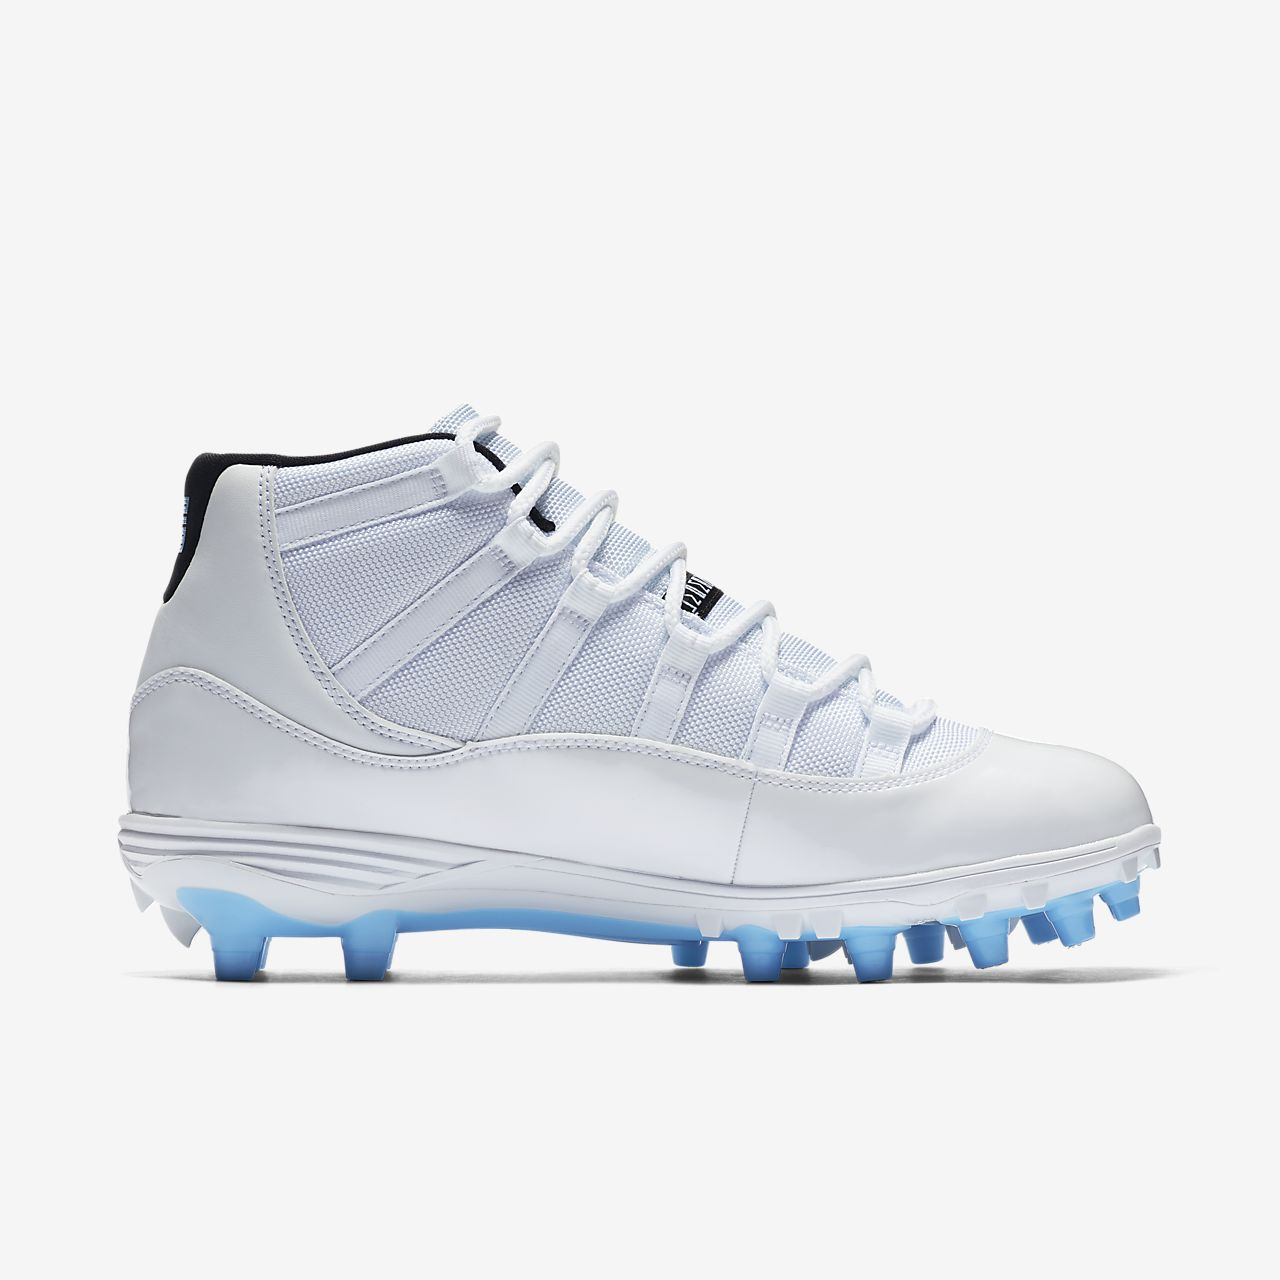 d8686ae8fc743a Jordan XI Retro TD Men s Football Cleat. Nike.com